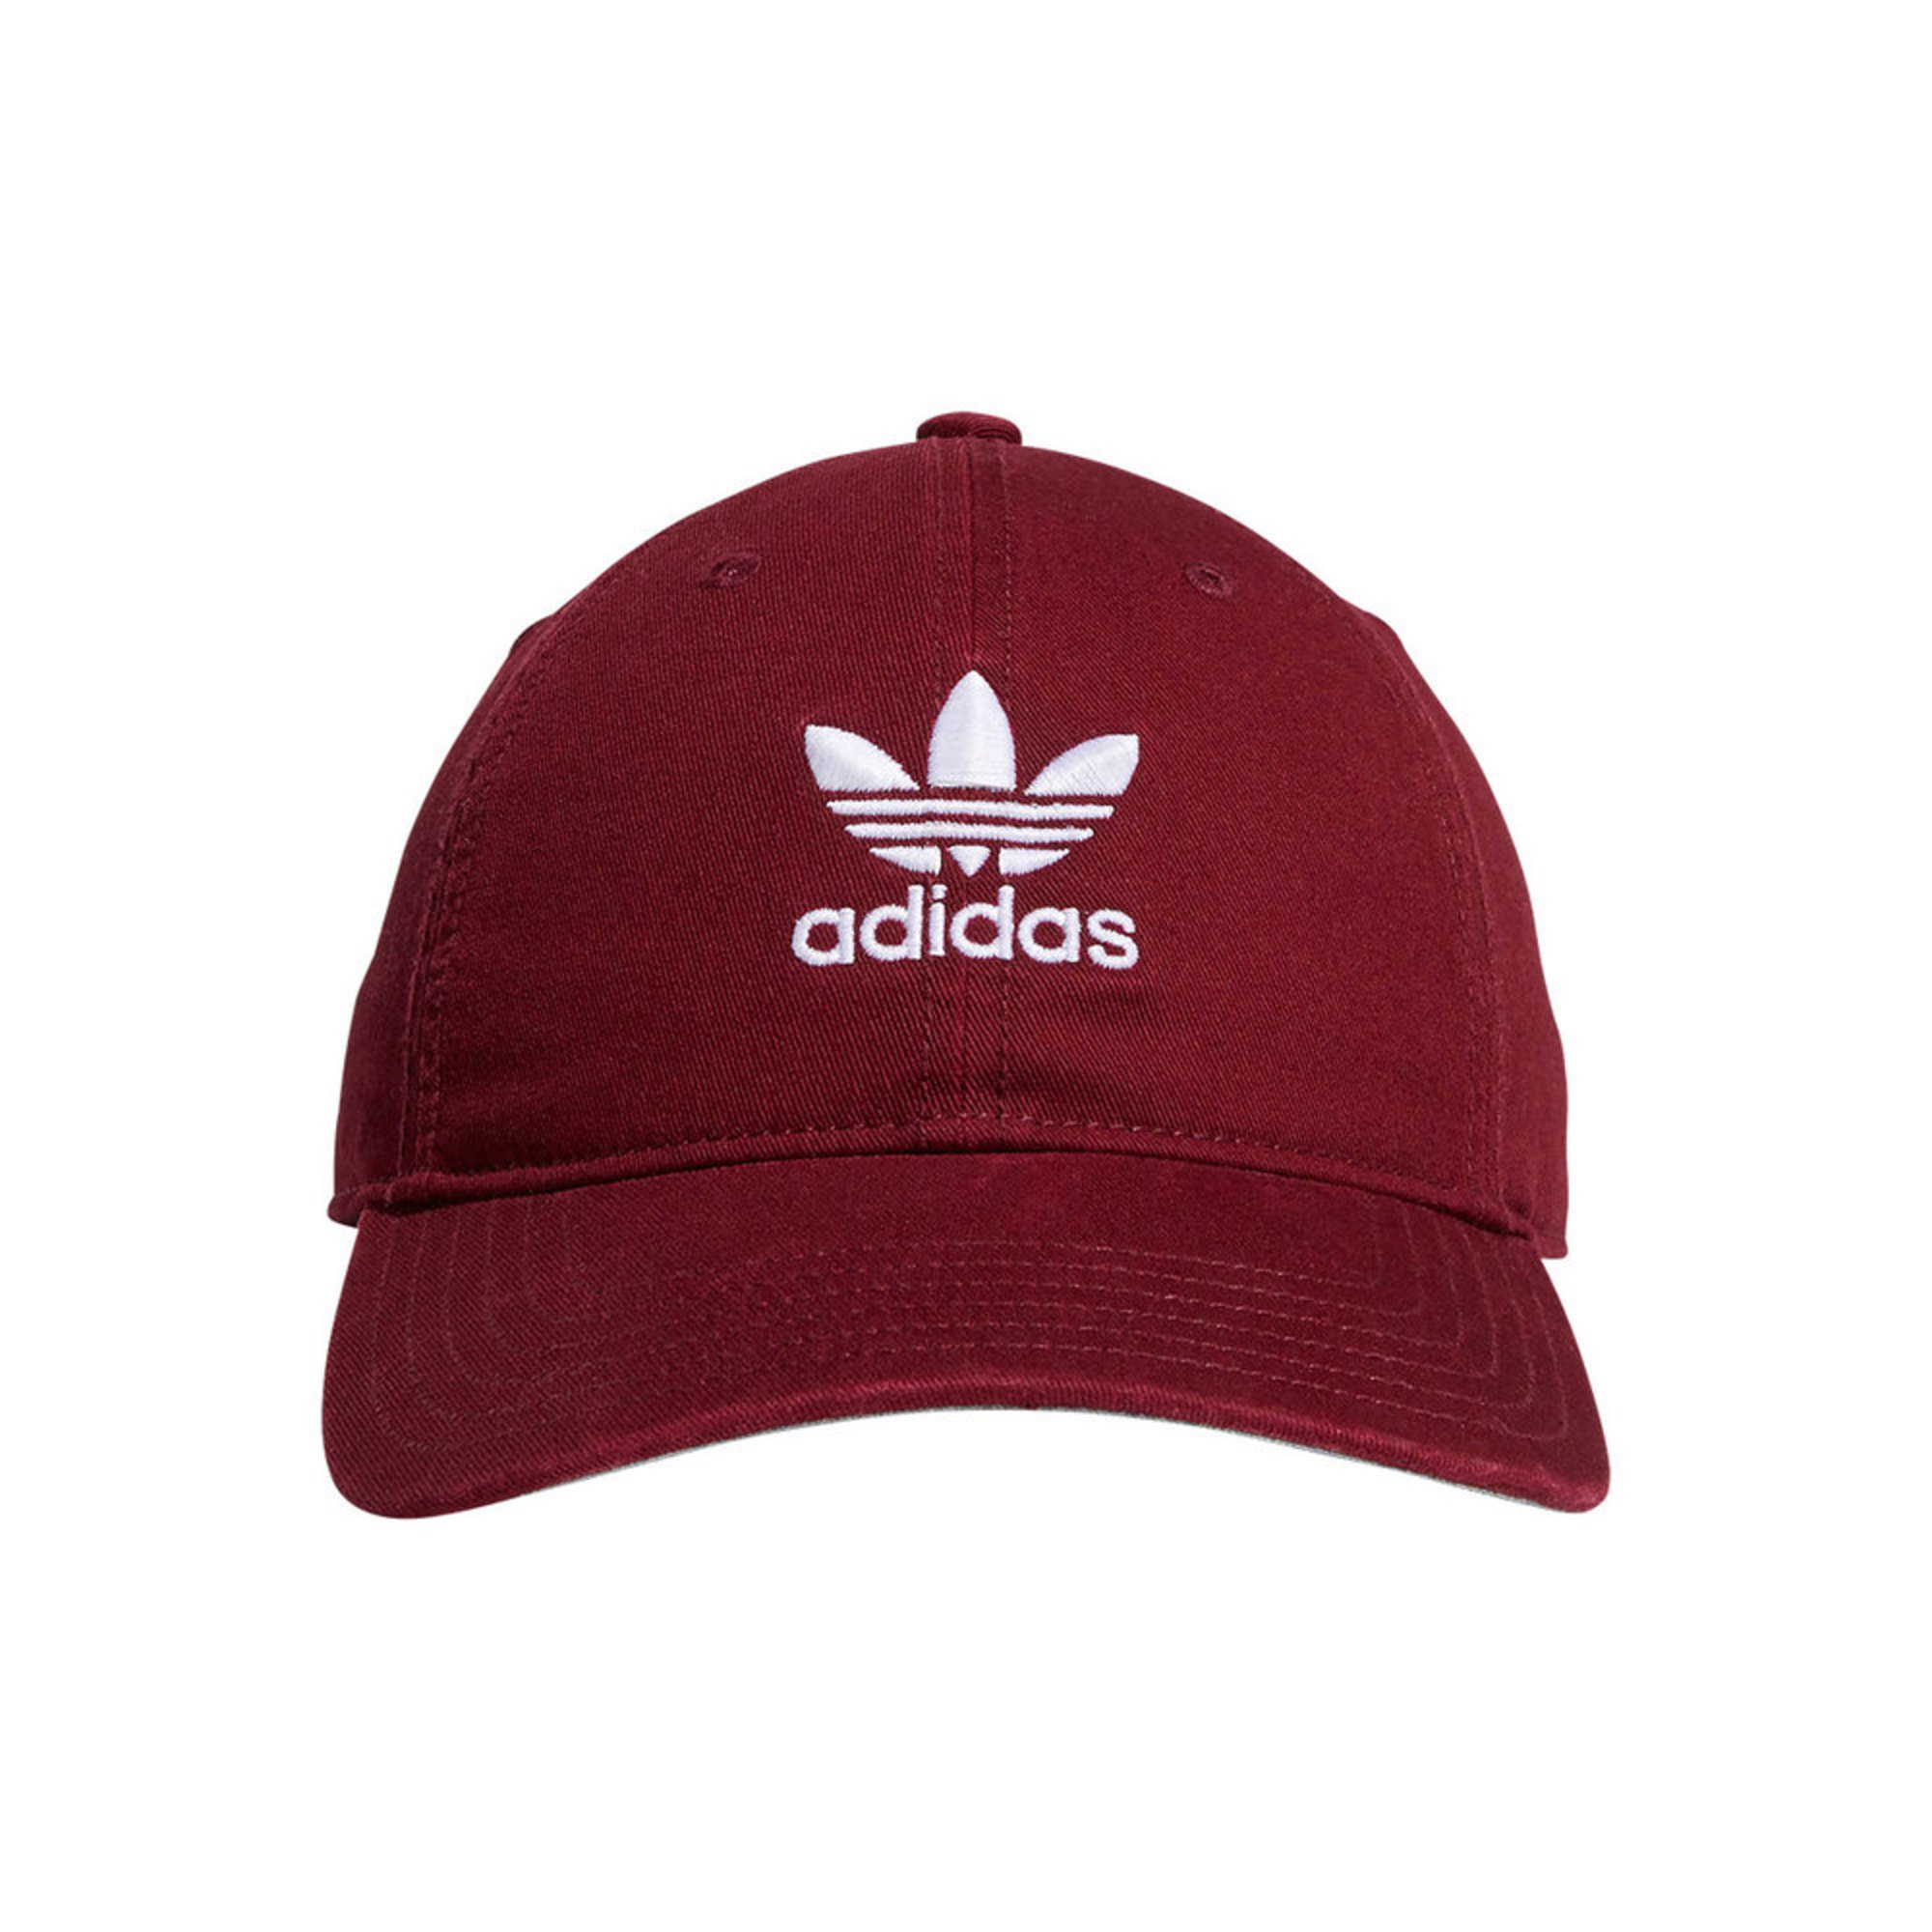 free shipping 650ad 3d094 Adidas Men s Originals Trefoil Relaxed Hat   Active Hats   Beanies ...